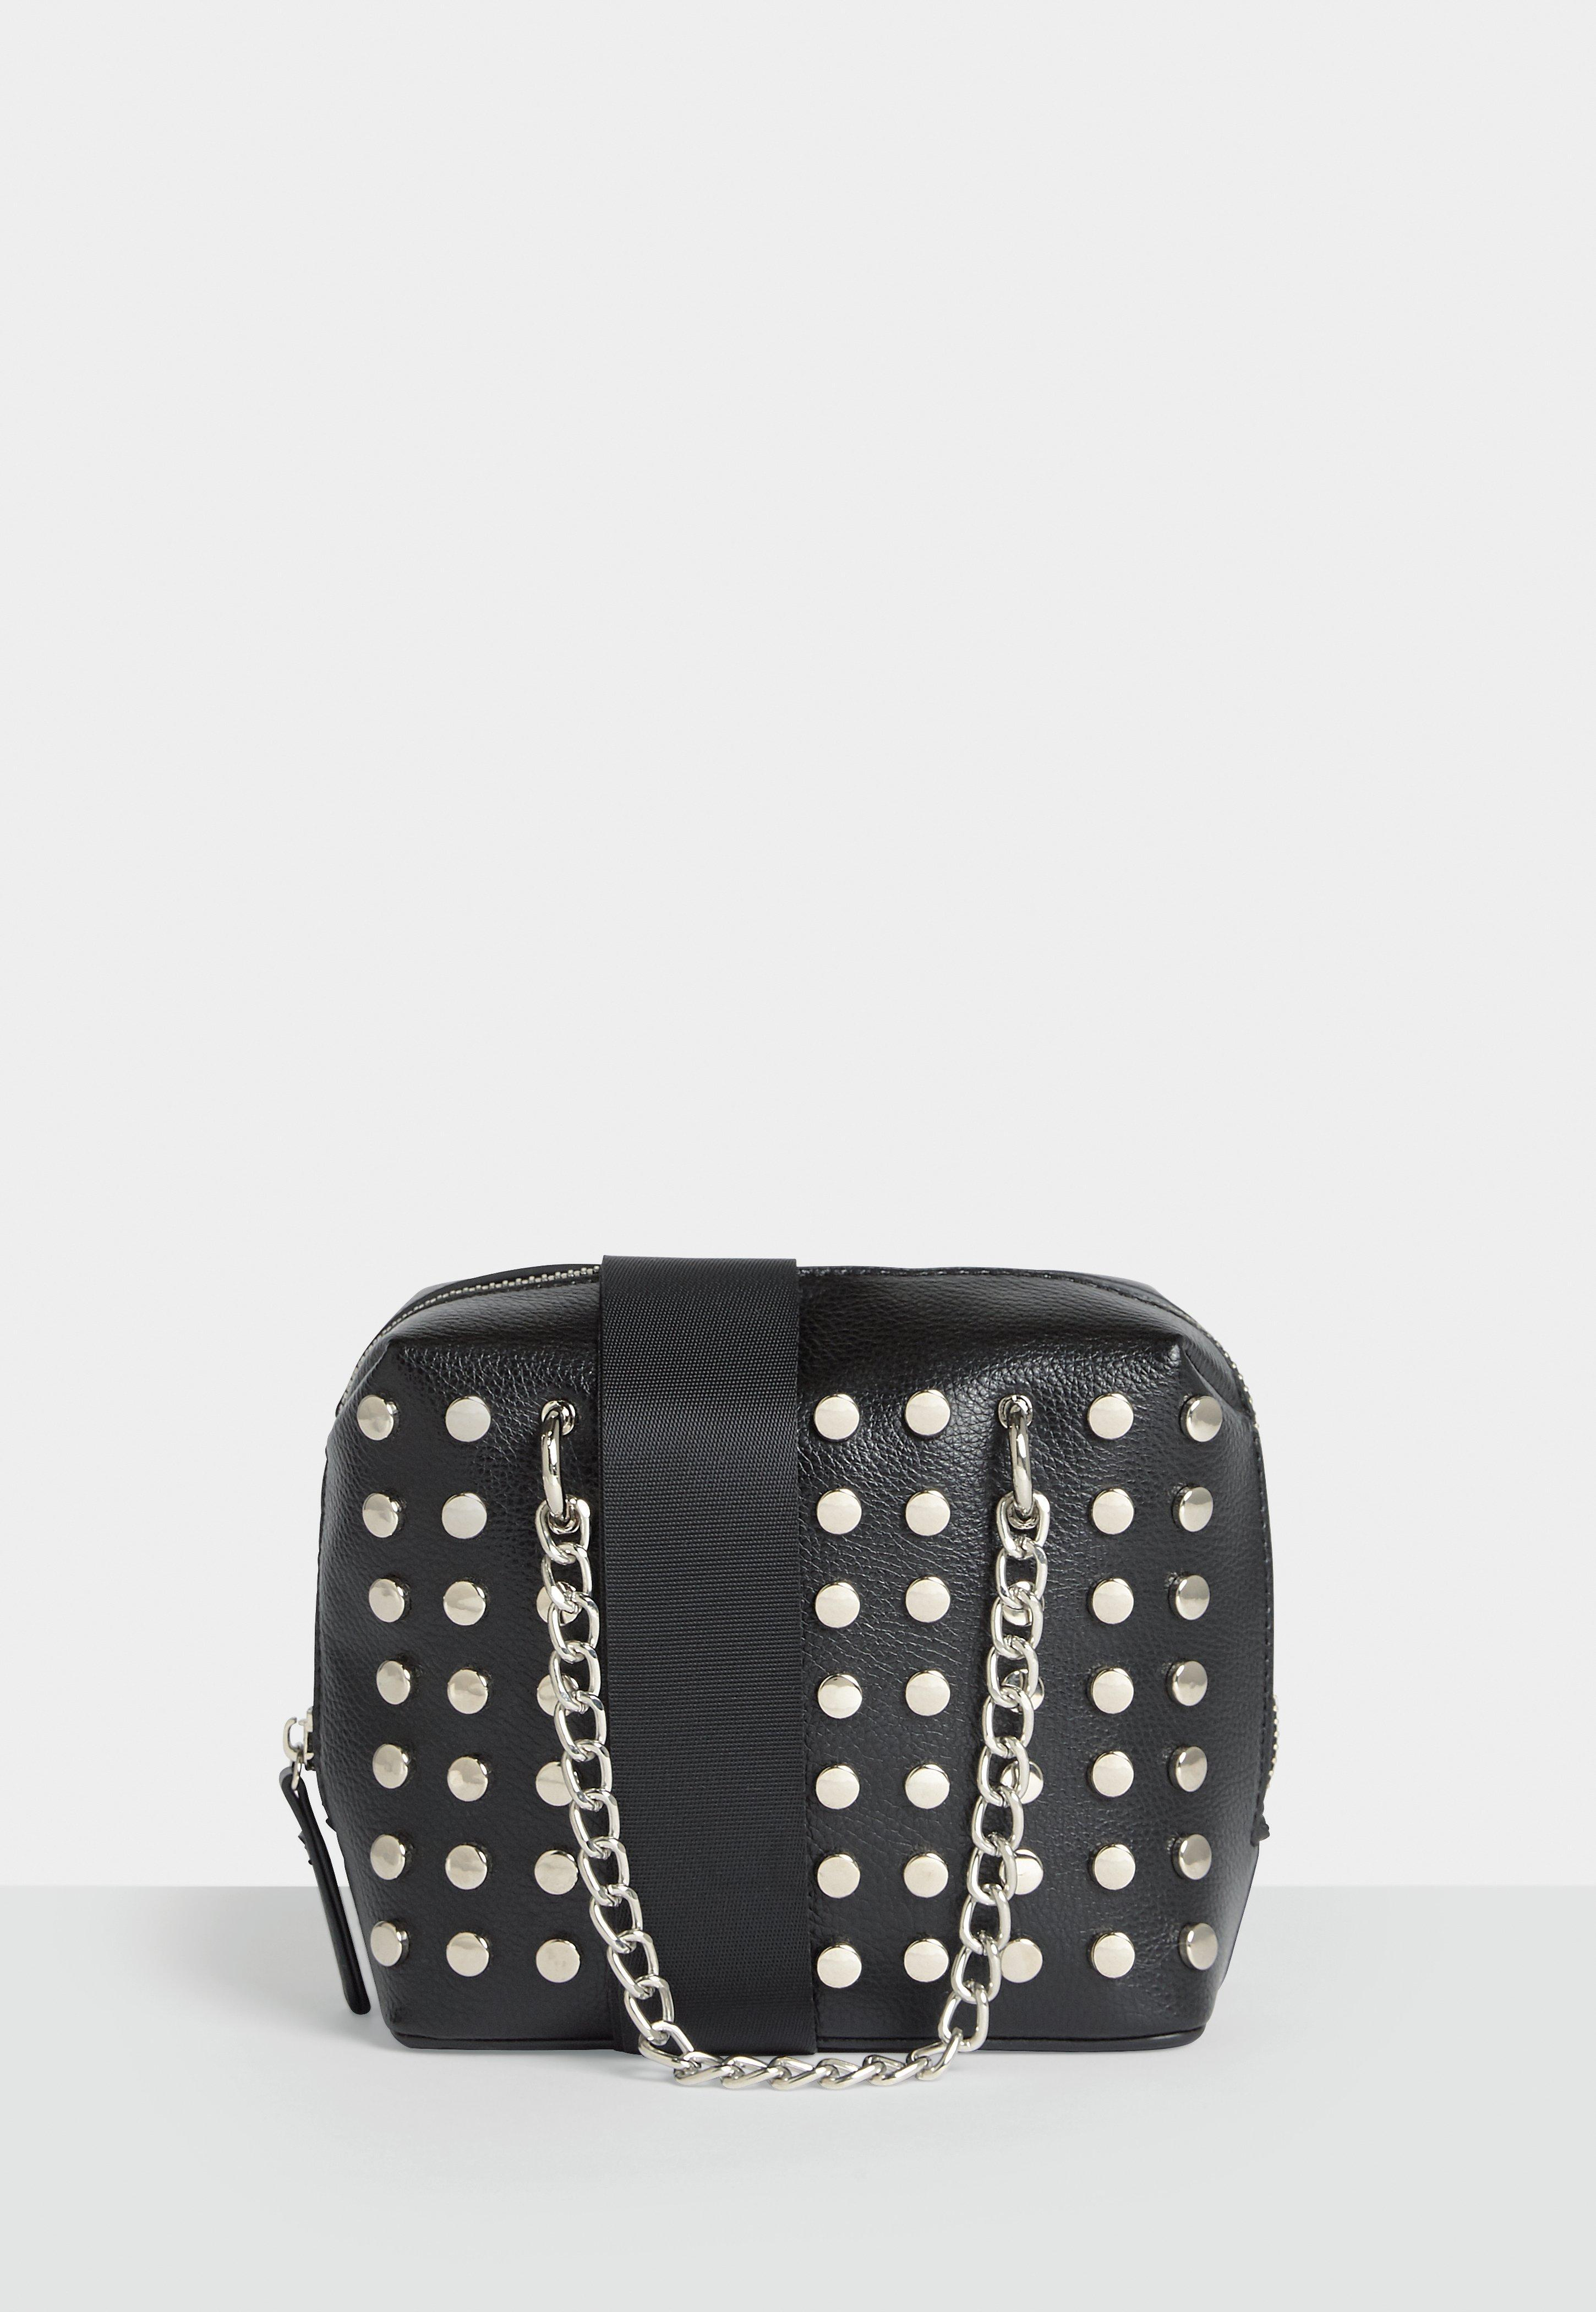 e8701dabf9 Lyst - Missguided Black Faux Leather Studded Cross Body Bag in Black